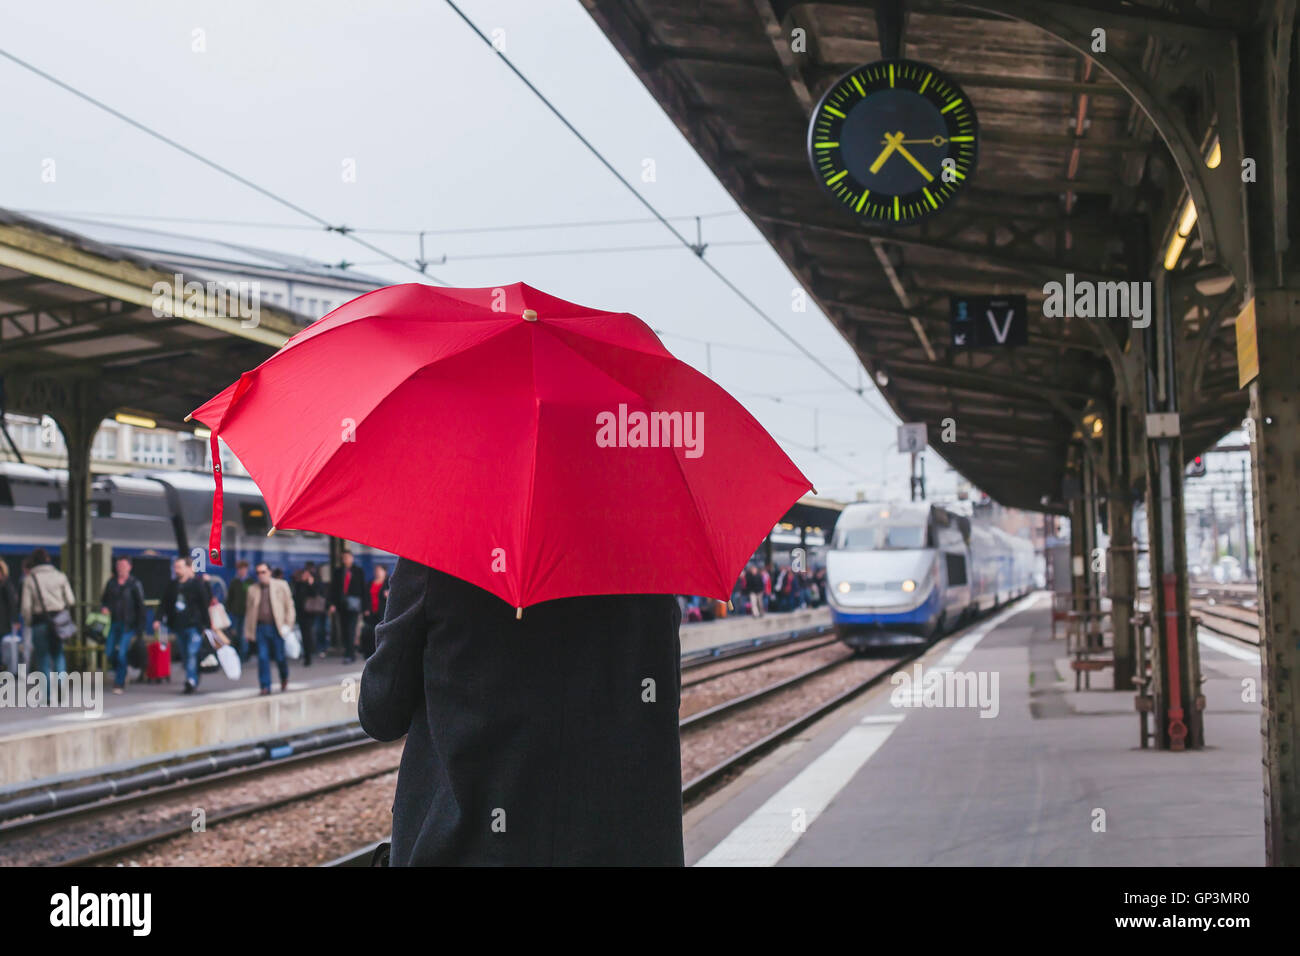 passenger waiting for the train on the platform of railway station - Stock Image